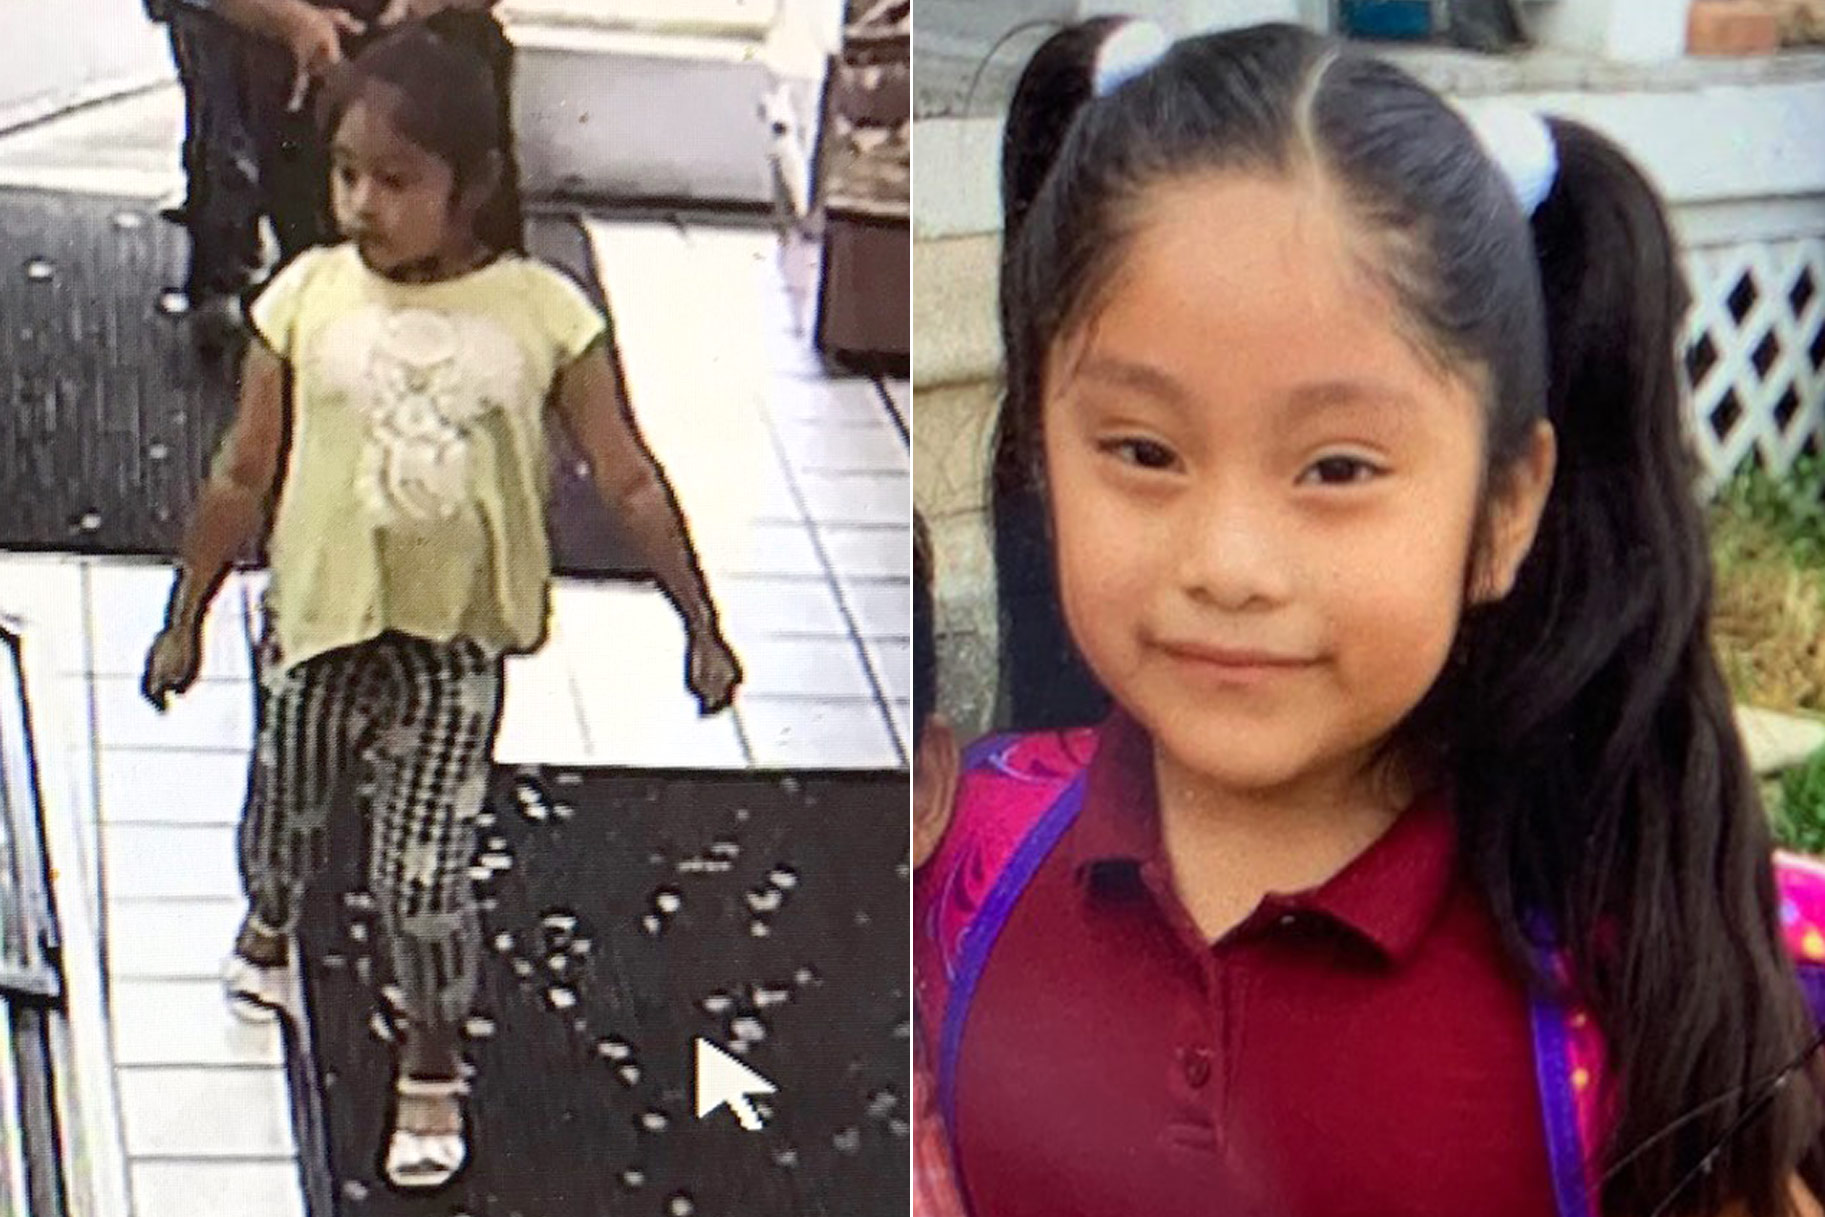 Reward Grows To $52K As Investigators Look For 'Key Piece Of Information' To Lead Them To Missing Dulce Alavez